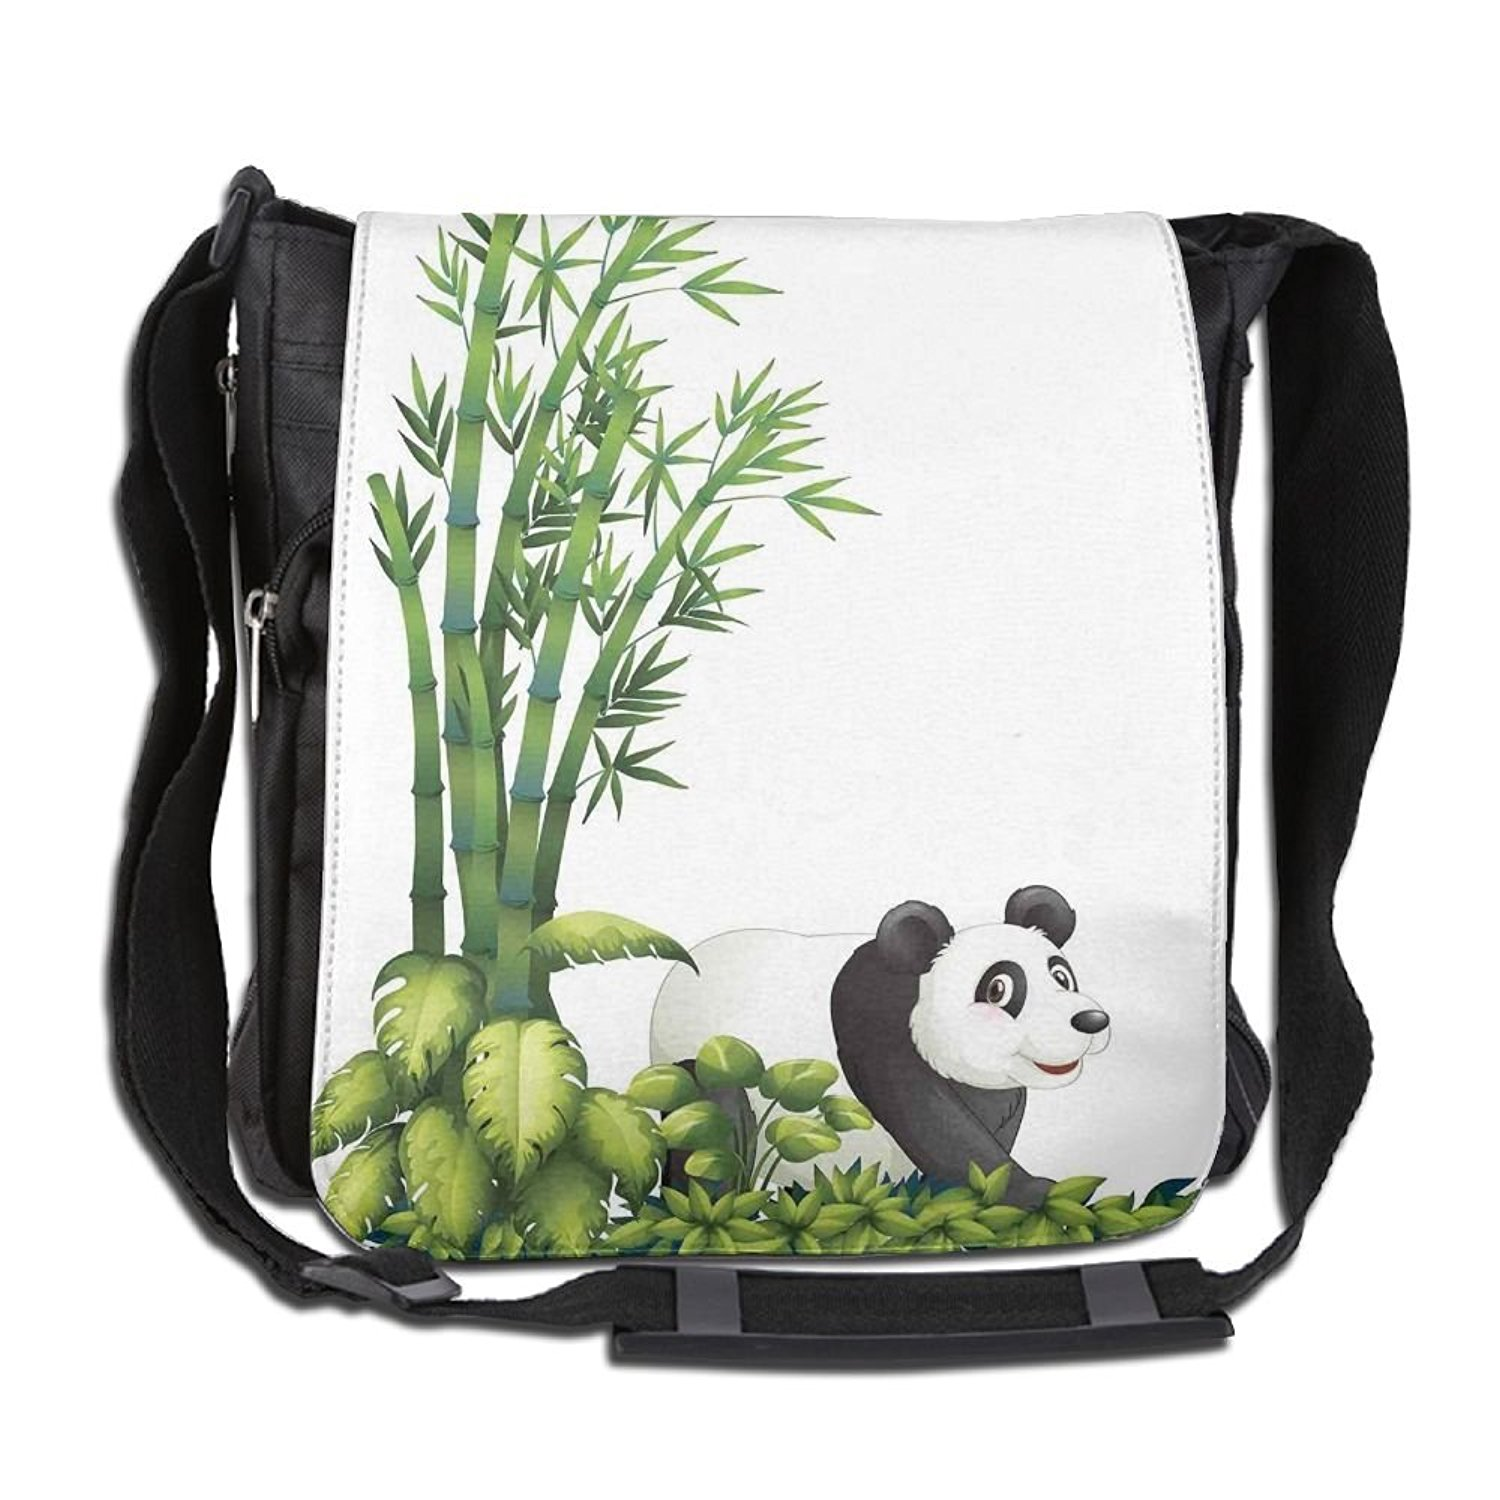 Panda Endangered Species by Sud Smart Pillow and Blanket Travel Buddy